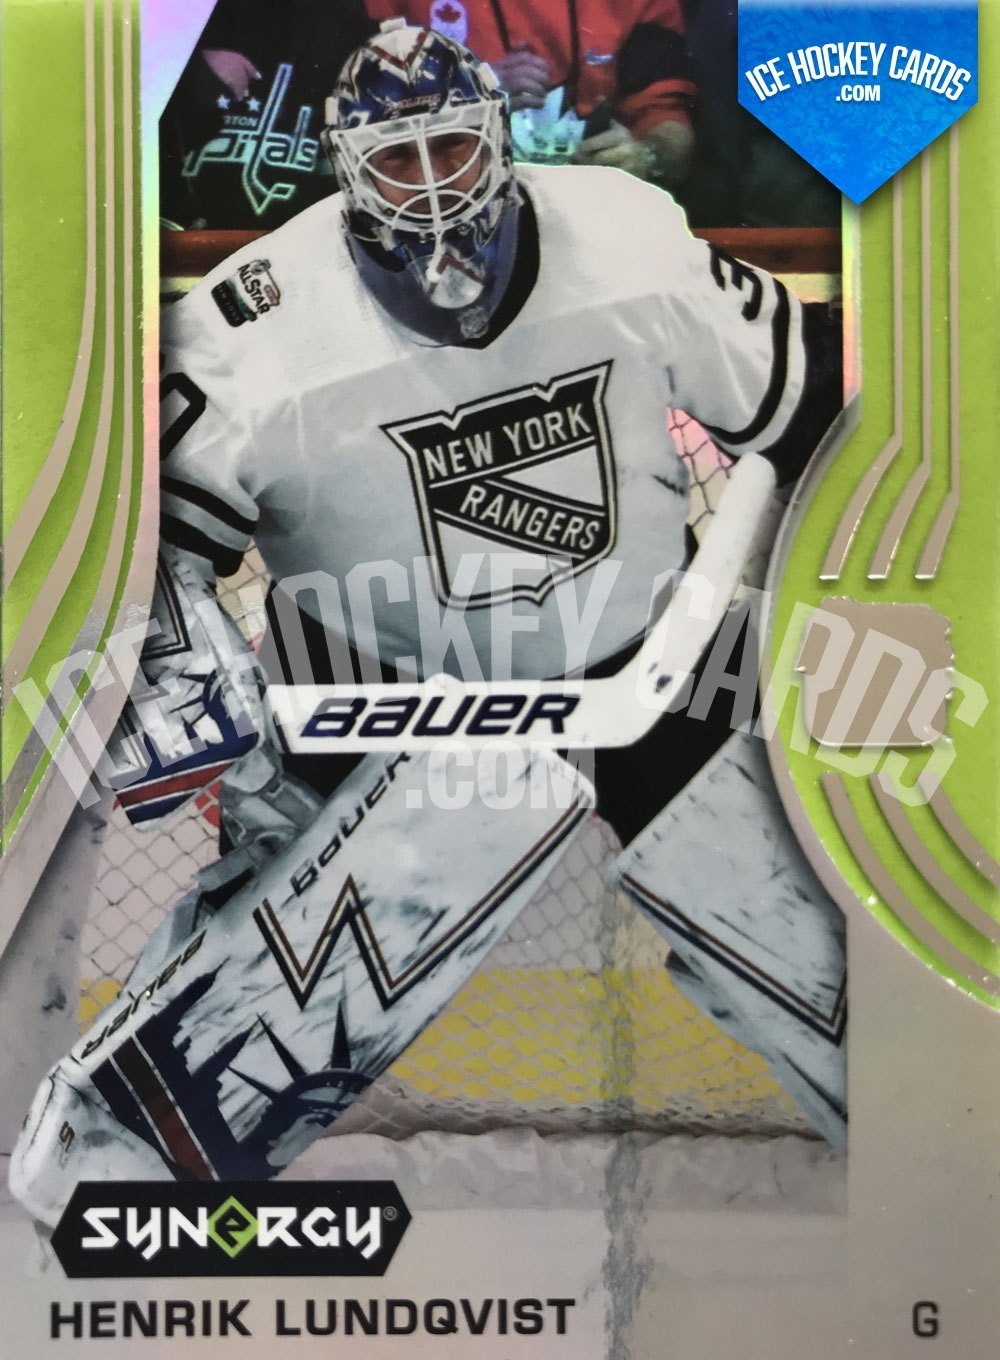 Upper Deck - Synergy 19-20 - Henrik Lundqvist All Star Game 2019